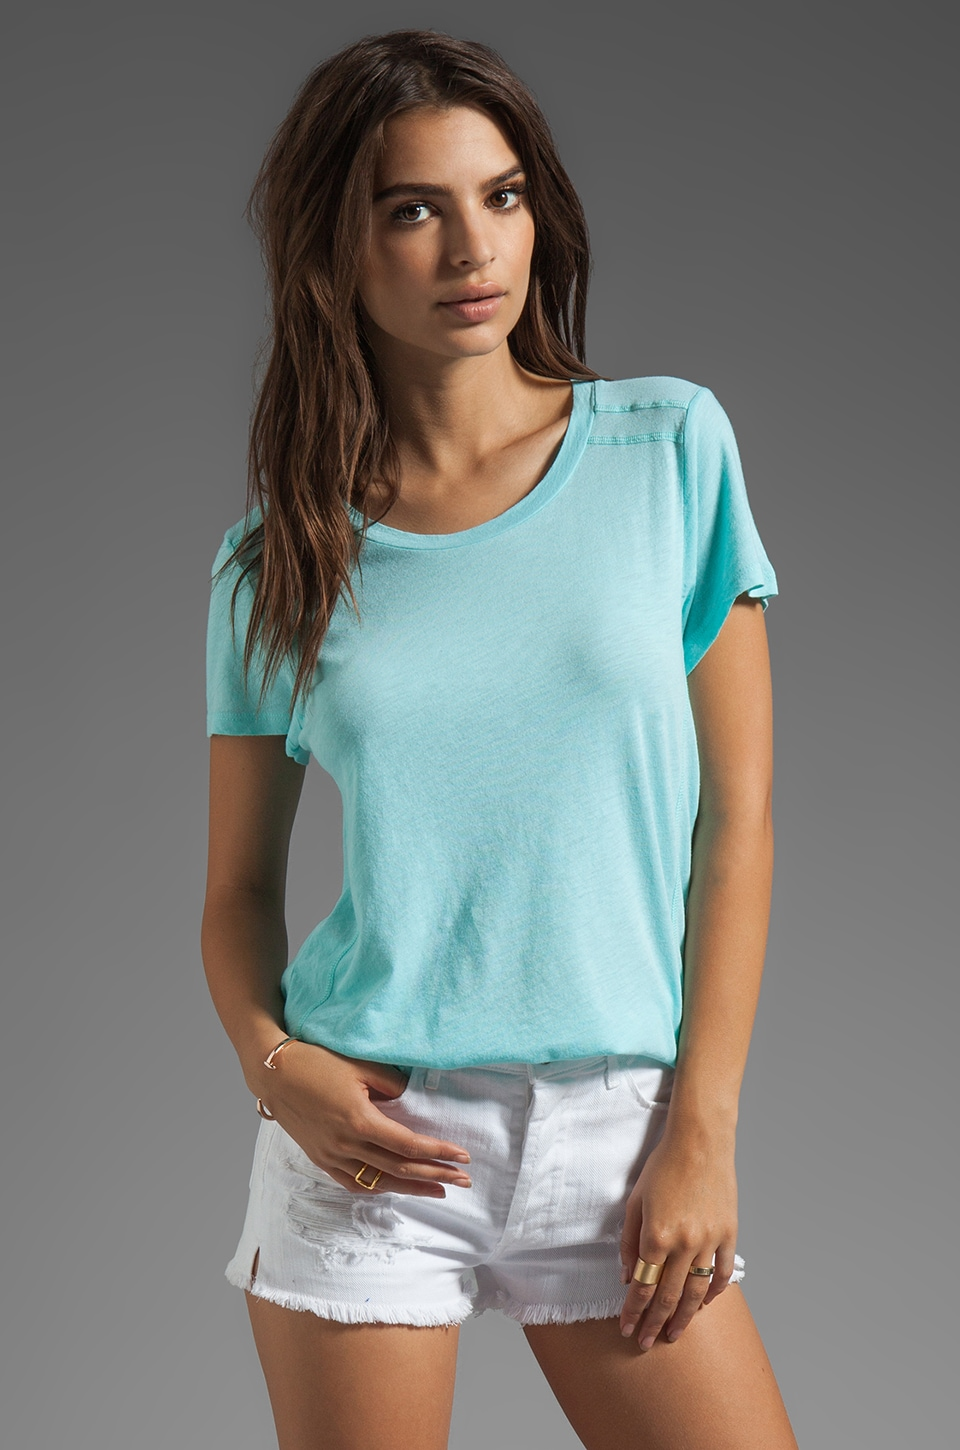 LA Made Slub Jersey Short Sleeve Crew in Mint Leaf